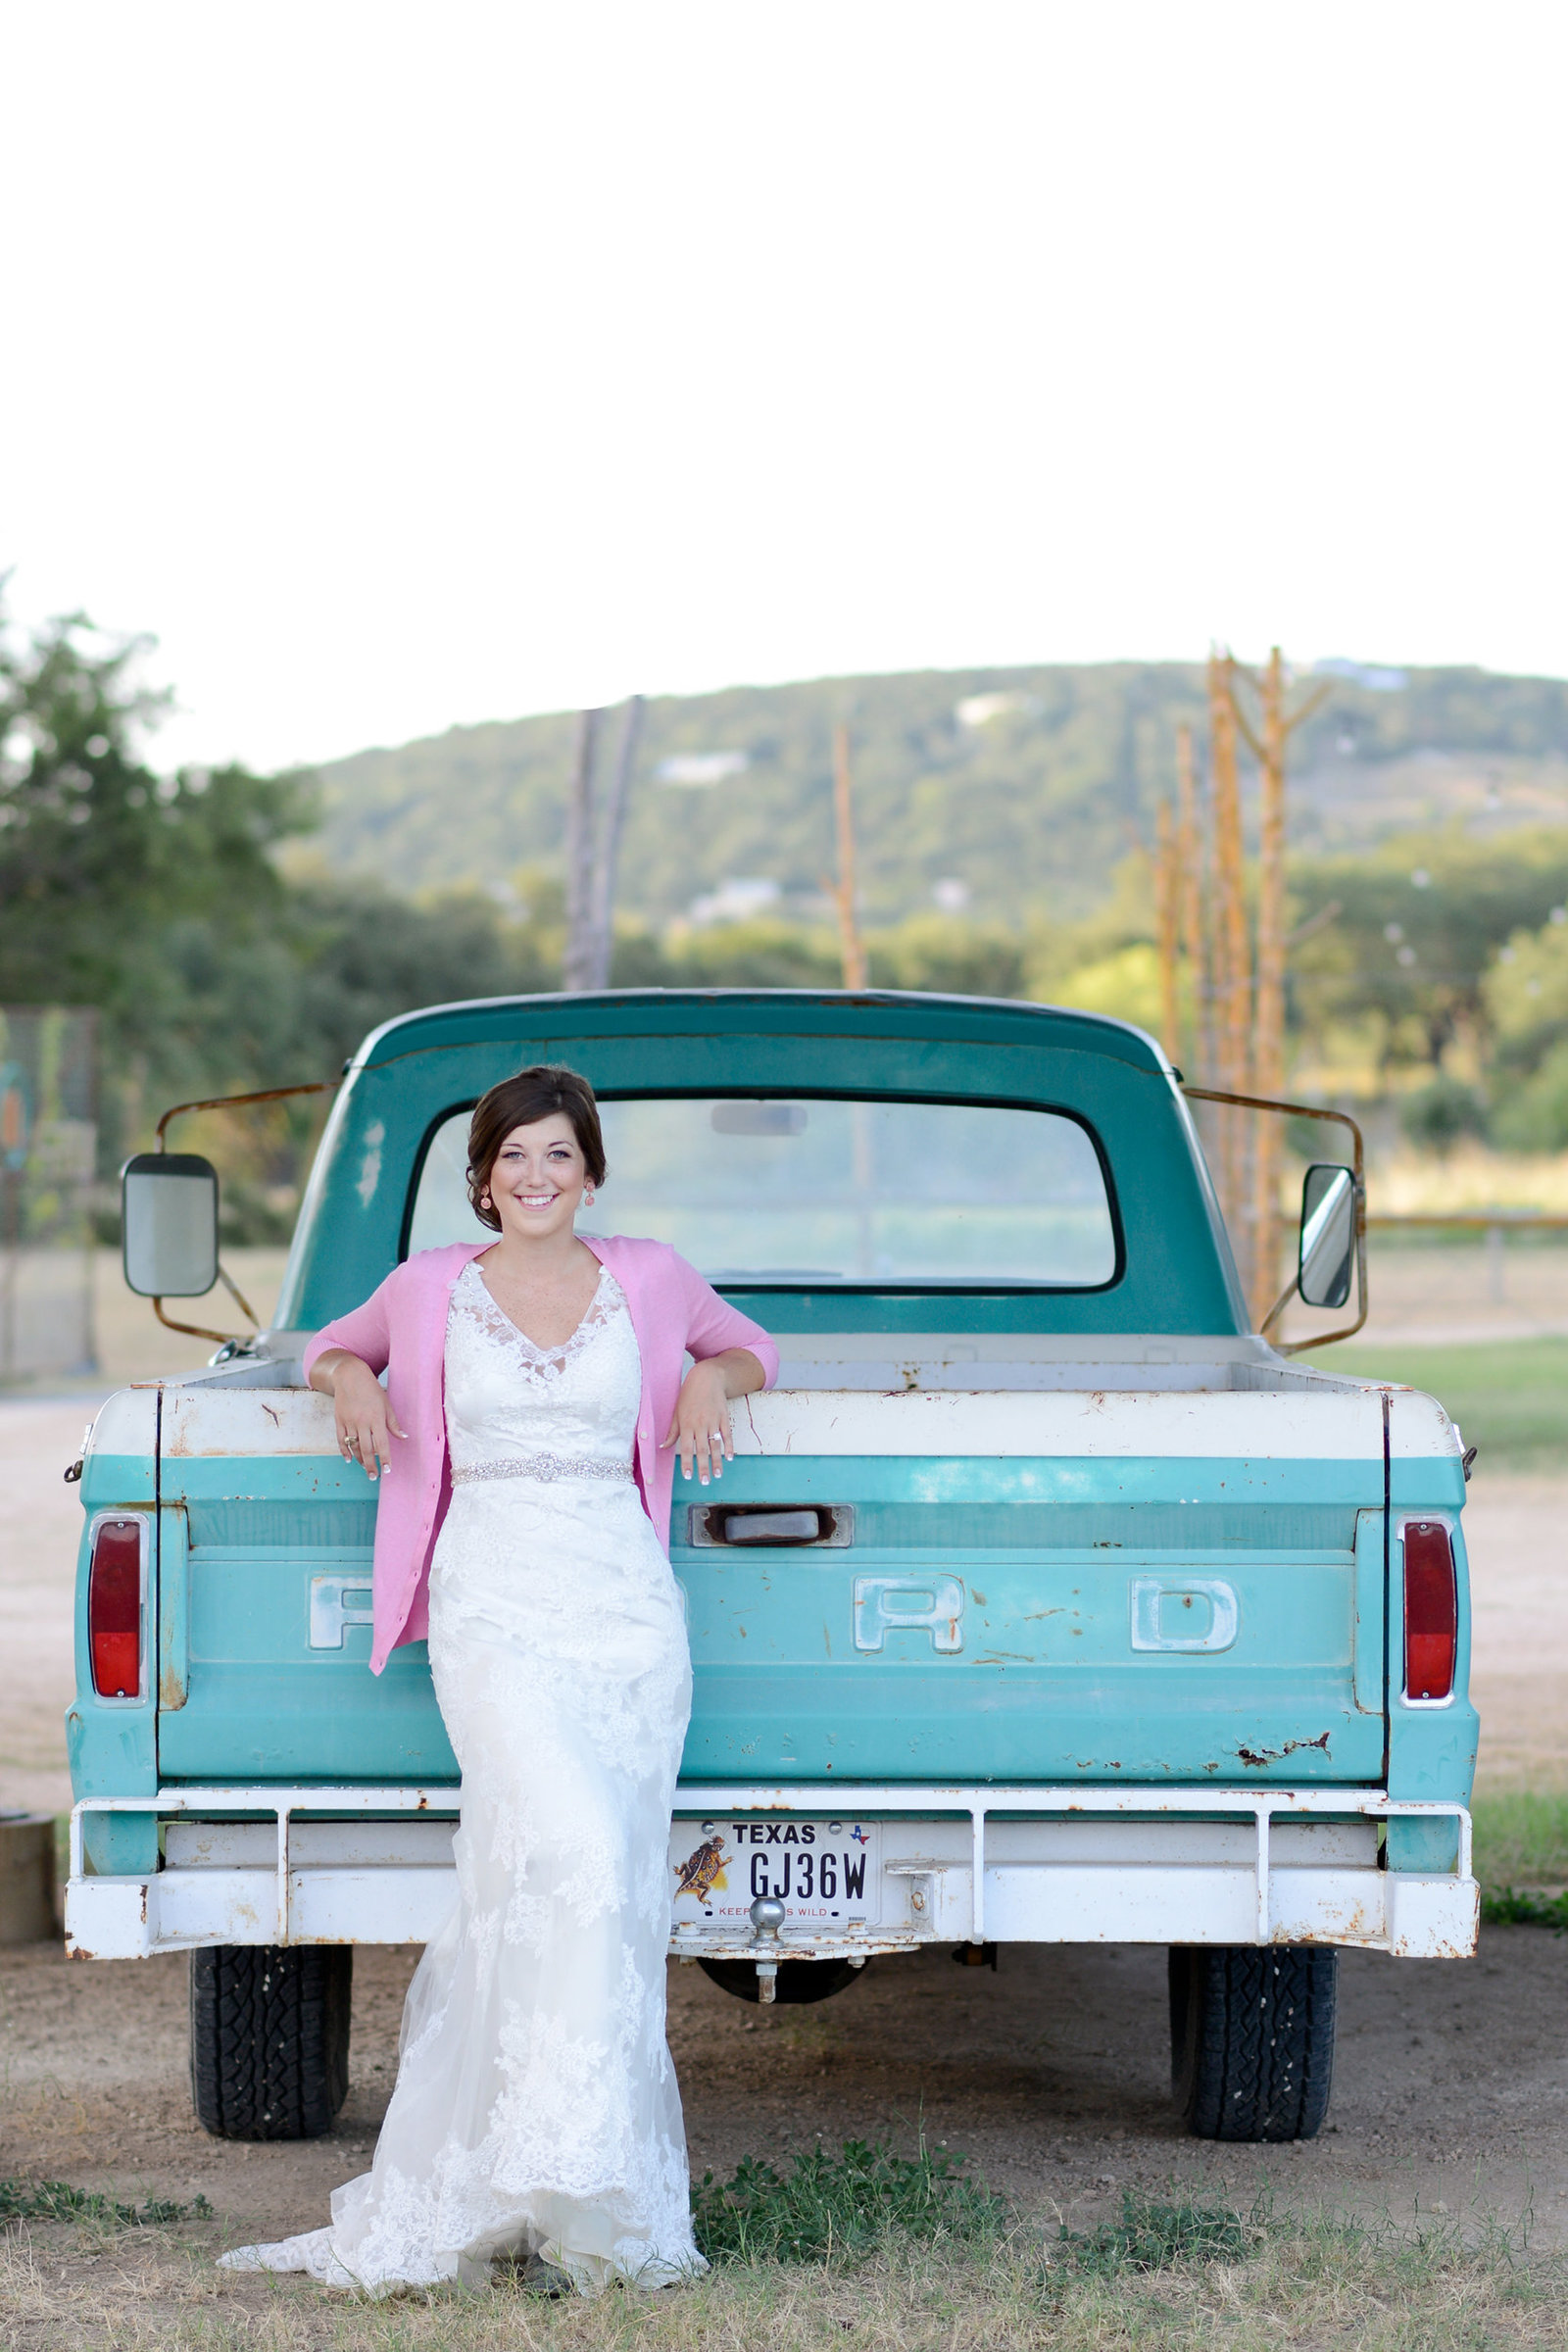 Montesino Ranch Vintage truck bridals with bride wearing pink cardigan